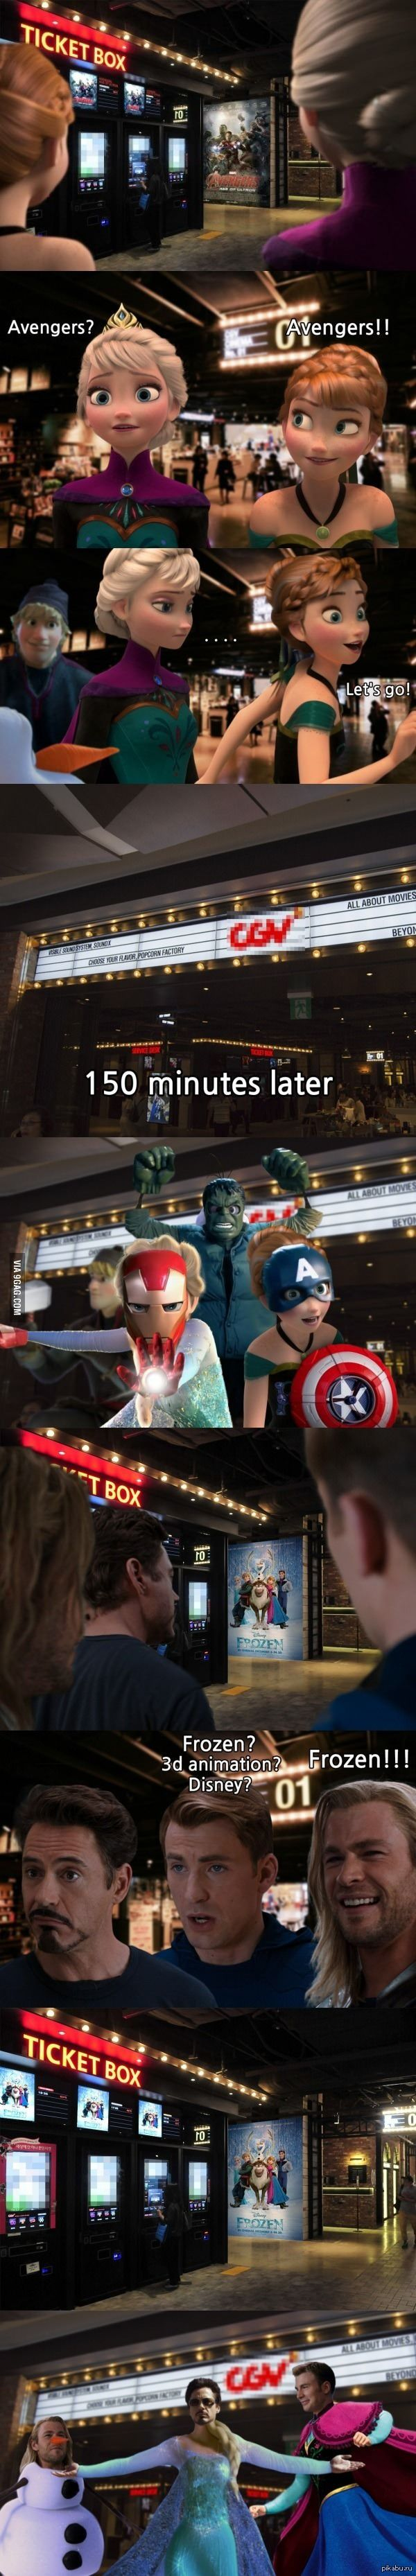 What Will Happen If Avengers And Frozen Casts Go To Watch The Movie Of Each Other's